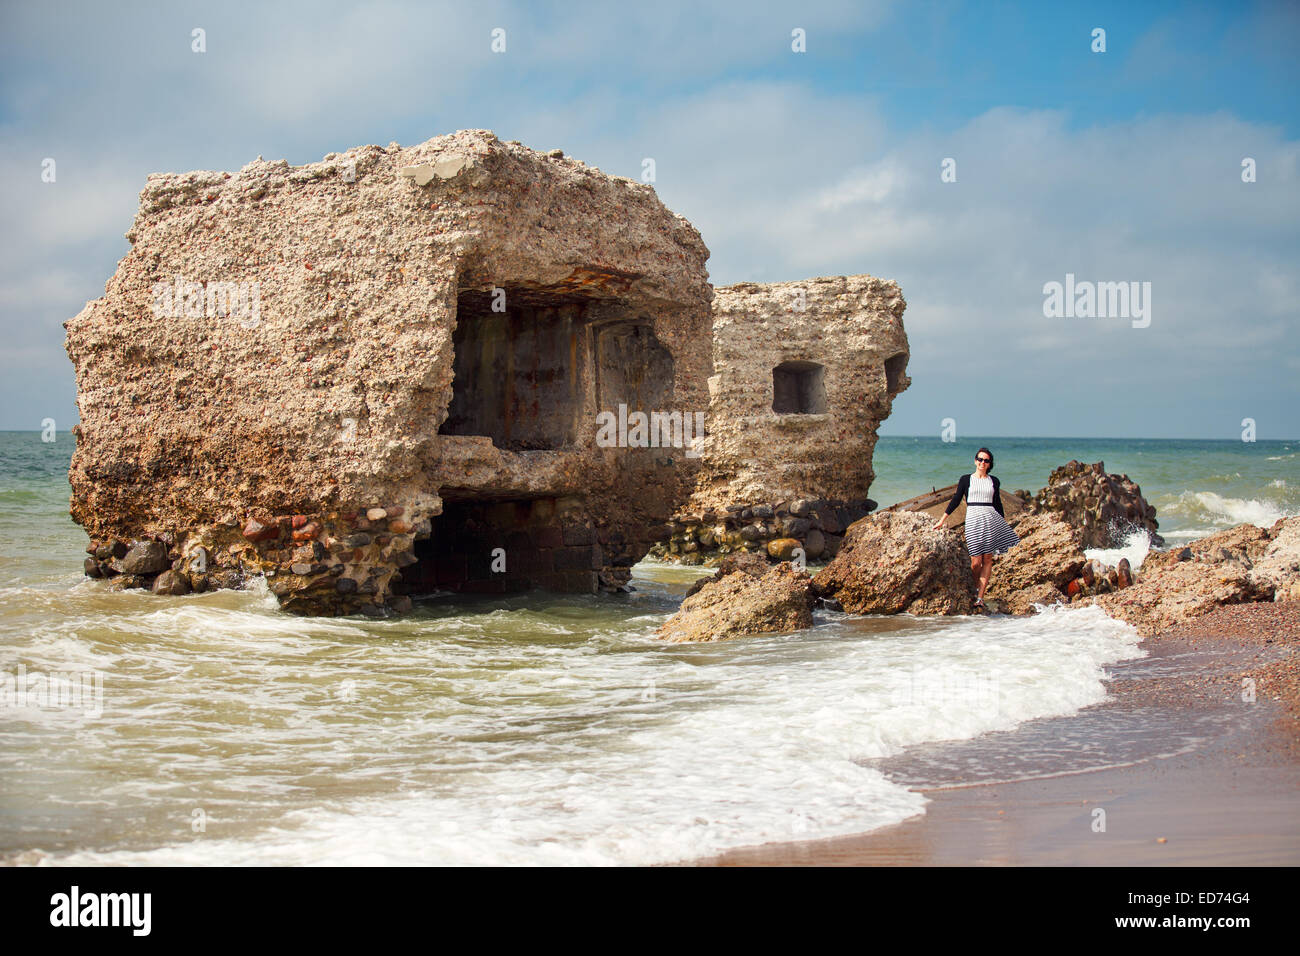 Stunning seascape with part of the old demolished forts in background in Liepaja, Latvia on the Baltic sea coast - Stock Image